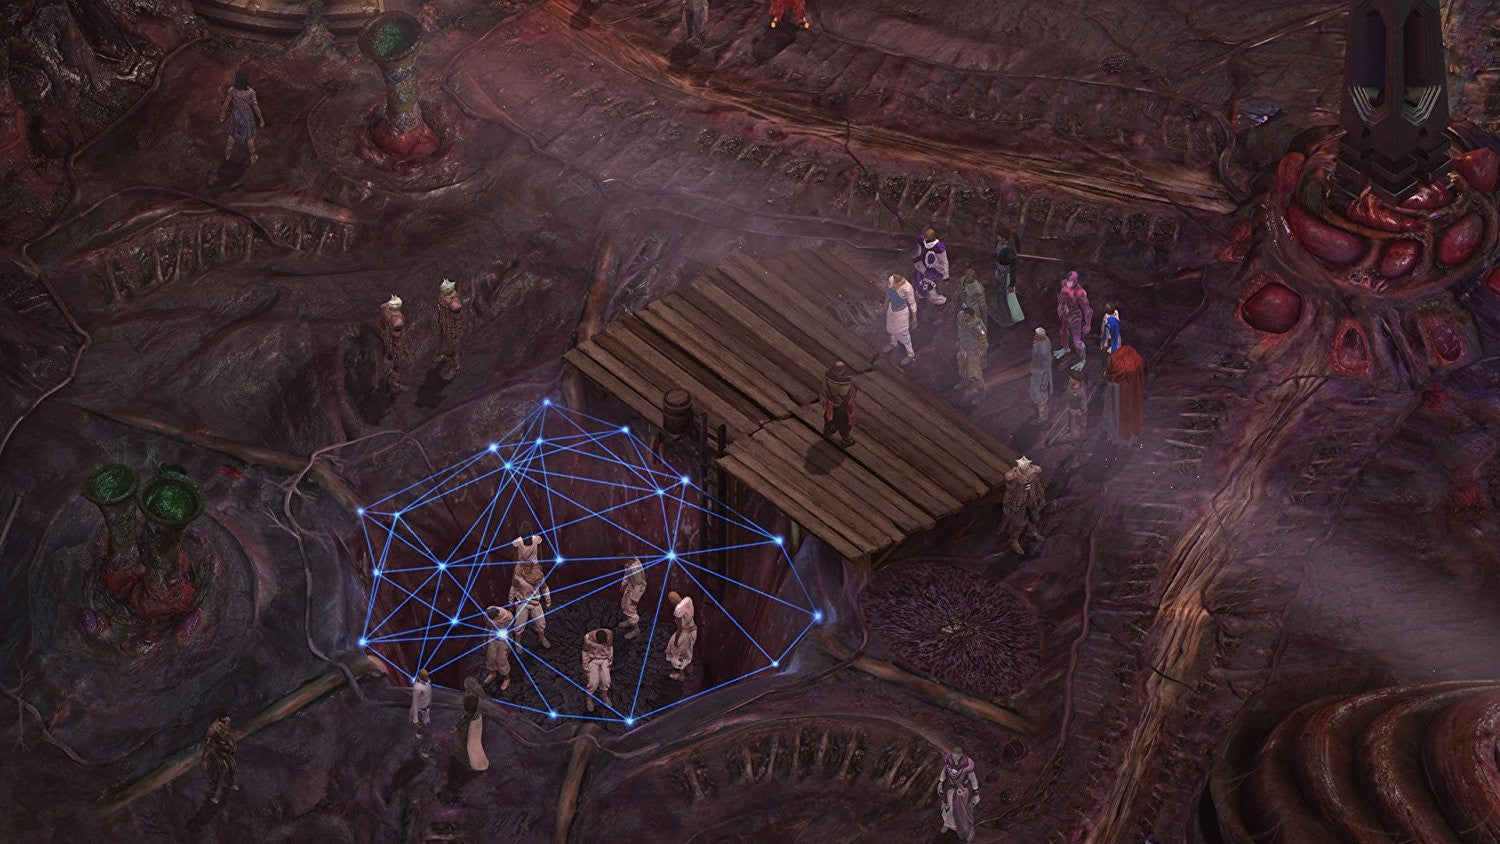 Torment: Tides of Numenera Collector's Edition (PS4) - Video Games by TECHLAND sp Z.O.O.UK The Chelsea Gamer